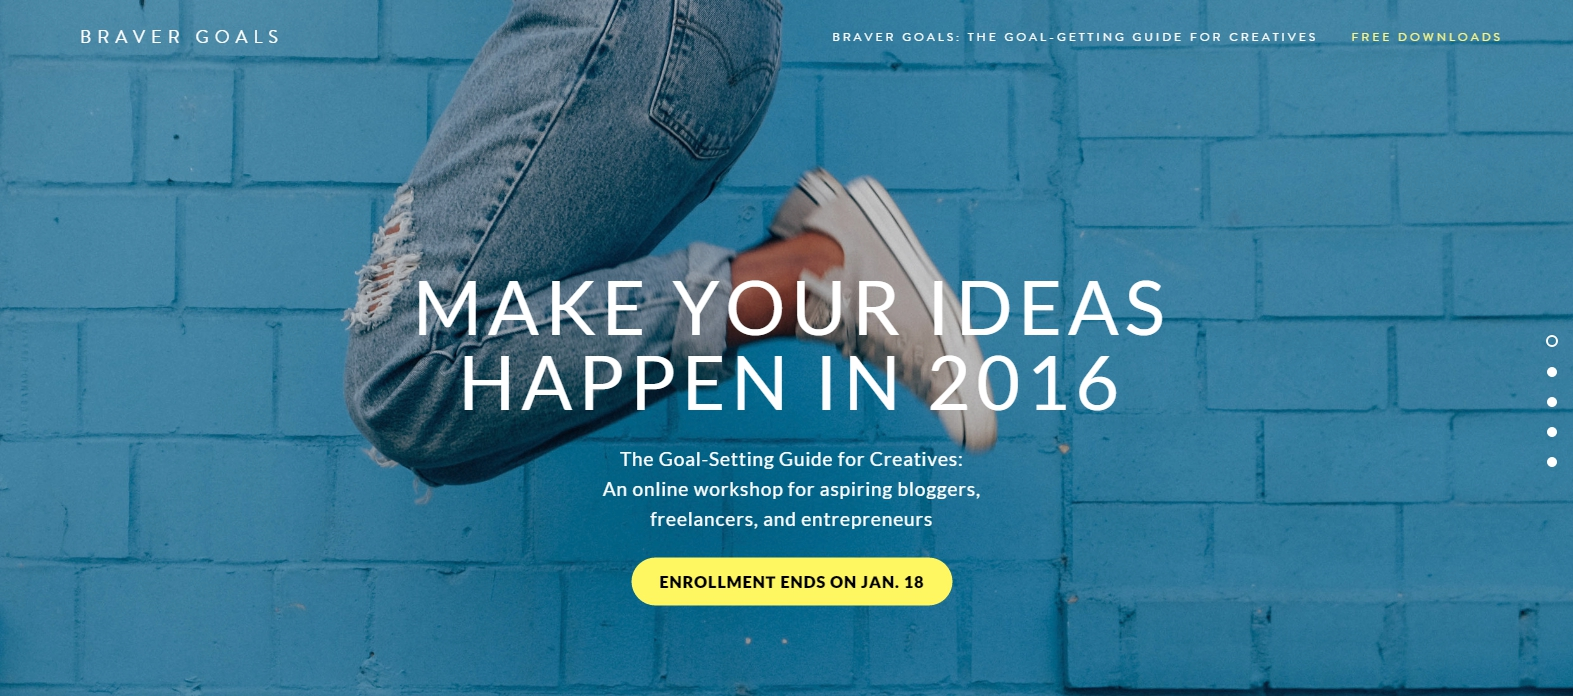 Braver Goals: The Goal-Getting Guide for Creatives